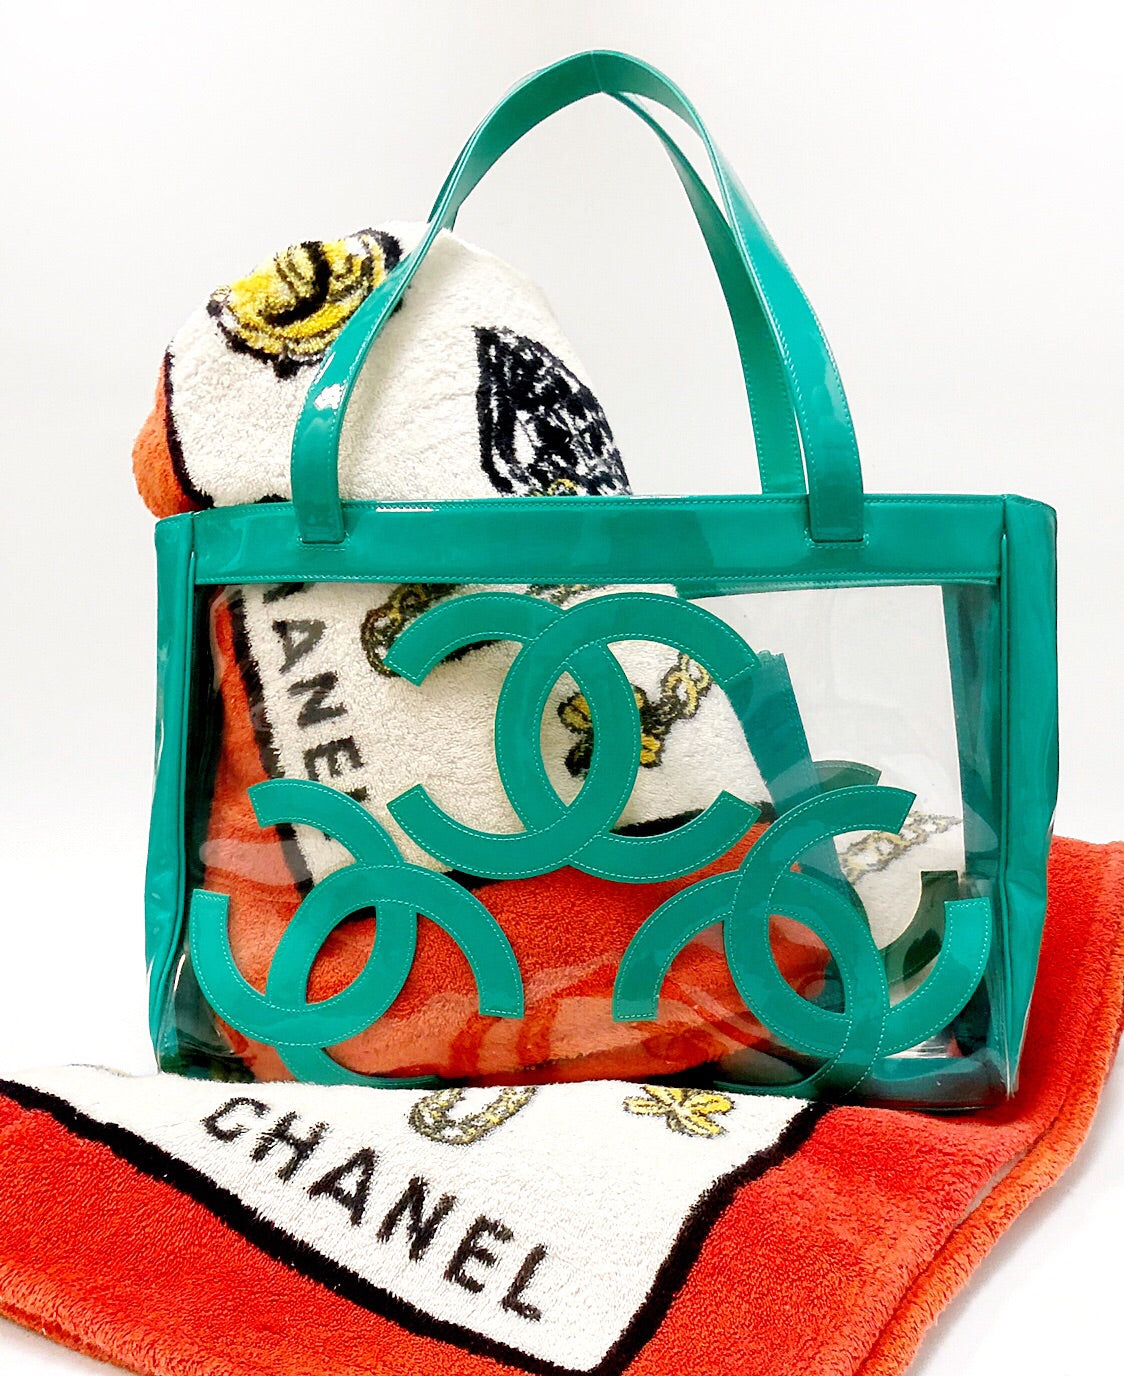 Chanel Turquoise Logo and Clear PVC Tote